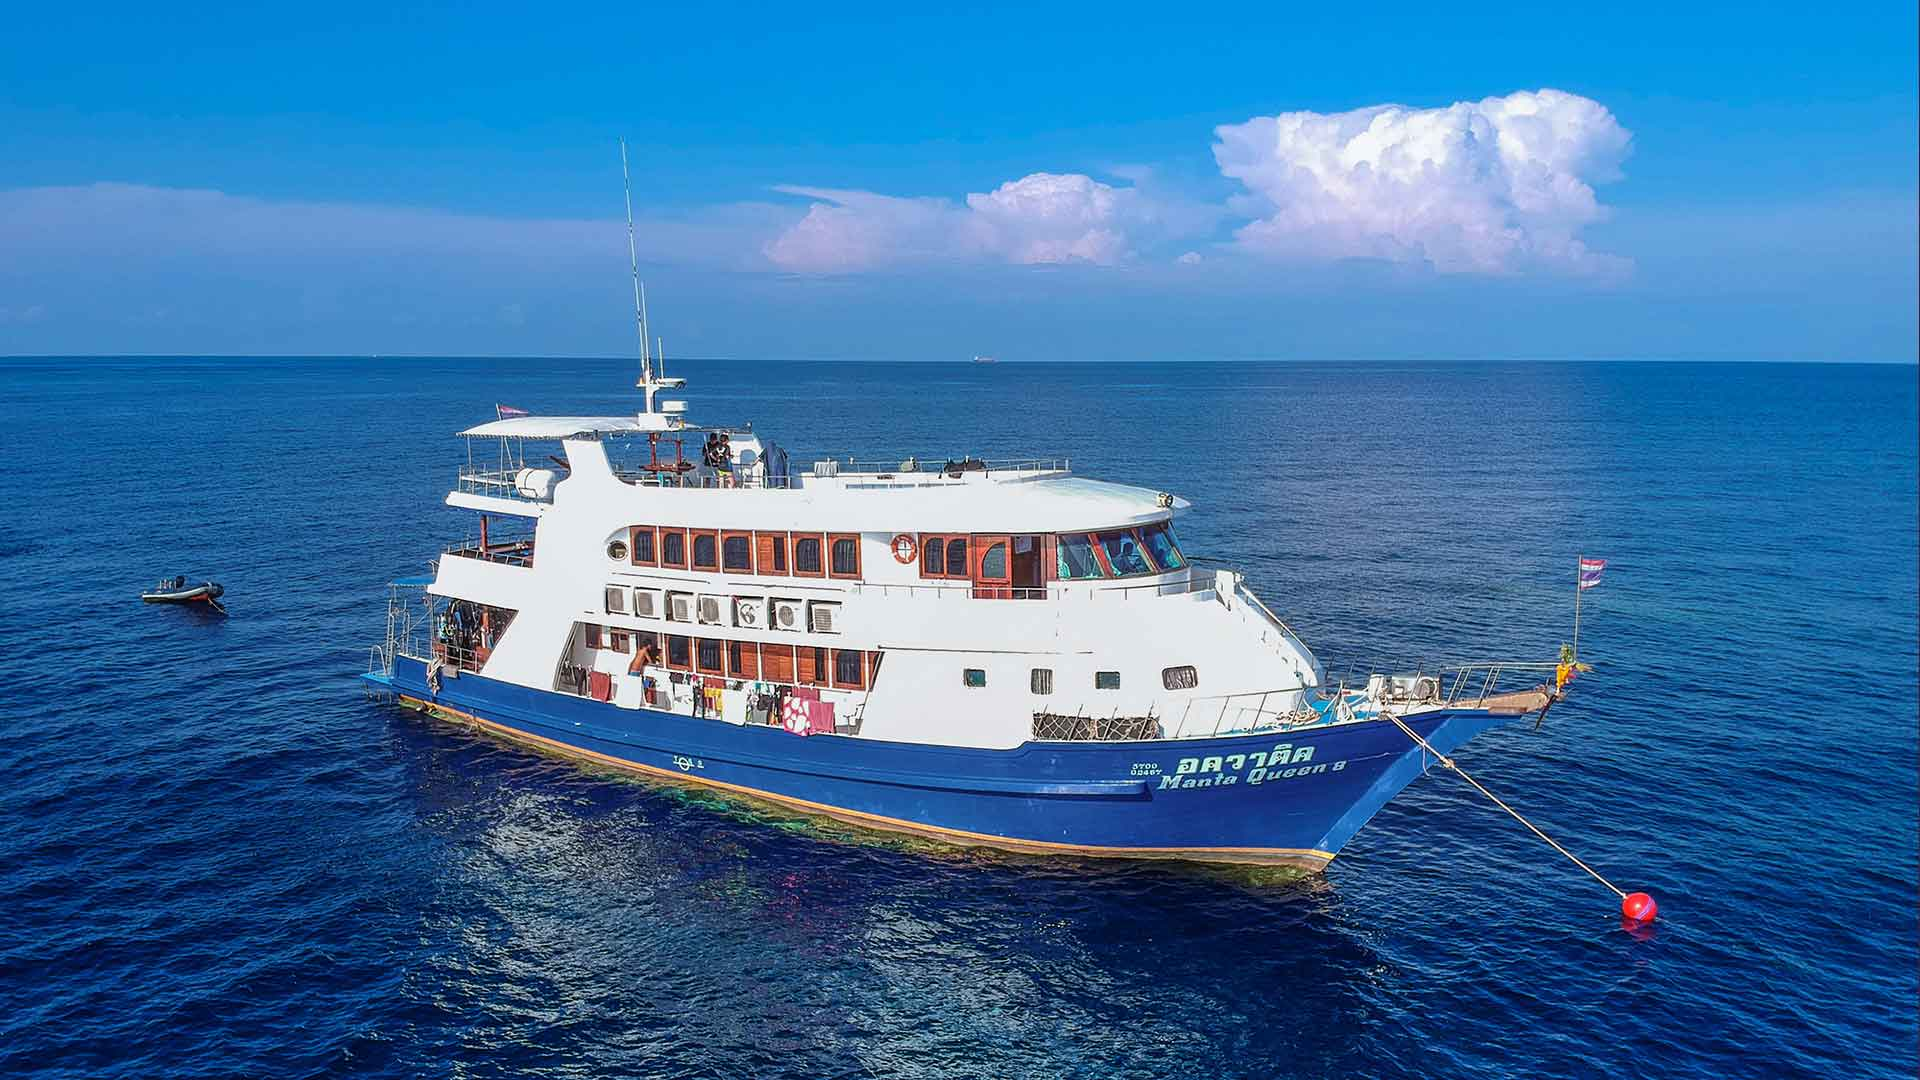 Richelieu rock liveaboard Manta Queen eight